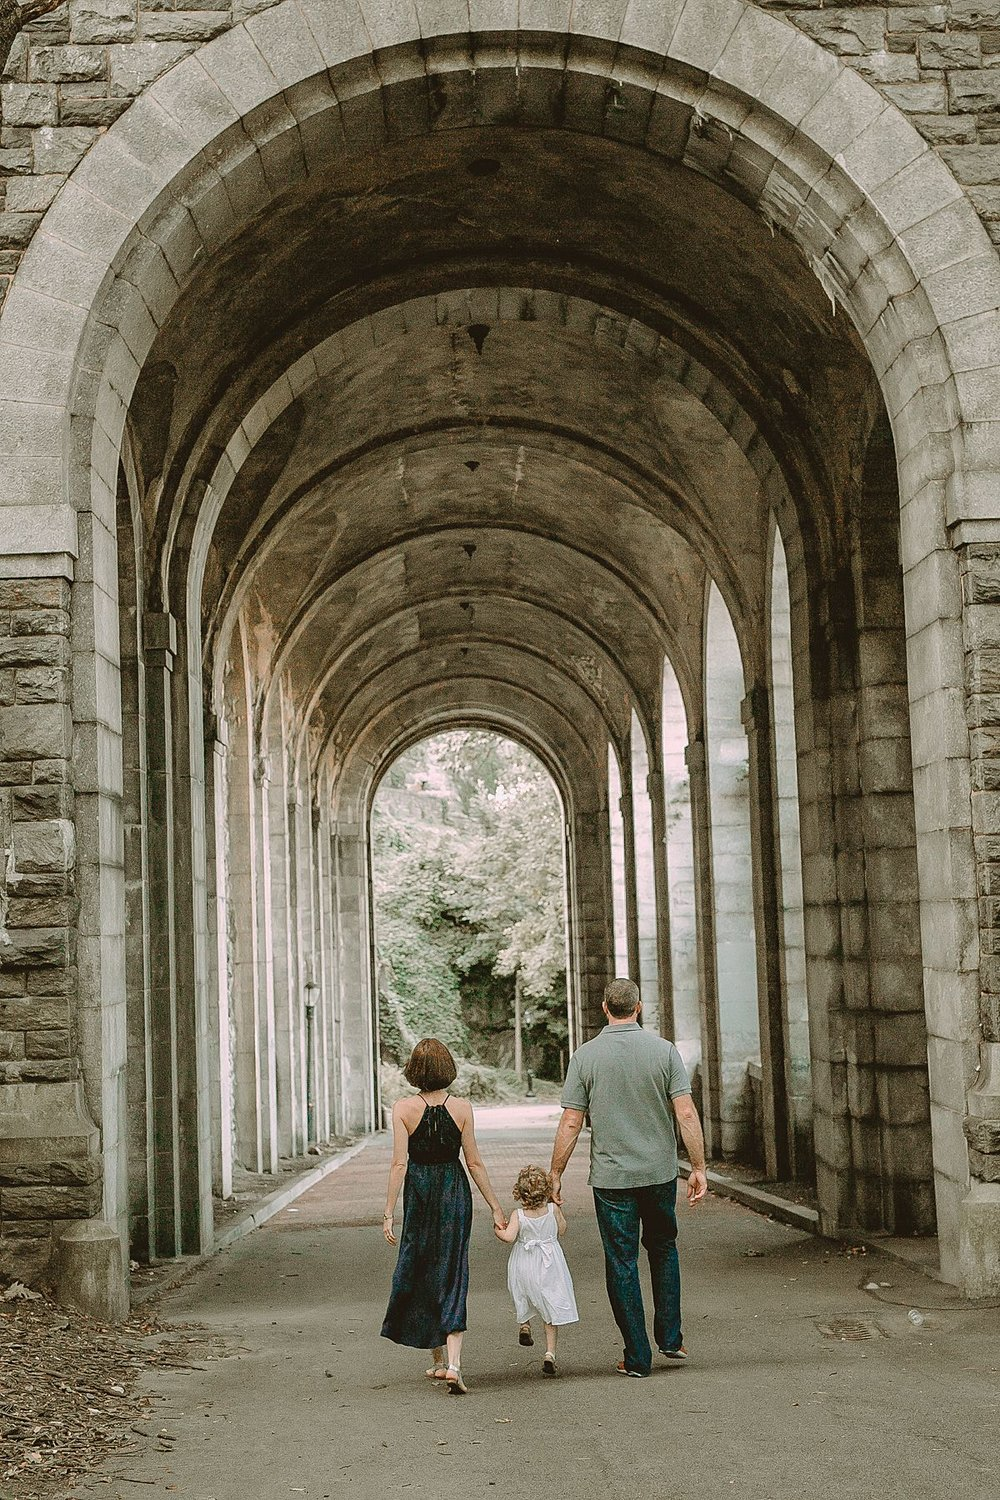 mom, dad and daughter walking under big concrete arch in fort tryon park in nyc. photo by nyc family photographer krystil mcdowall